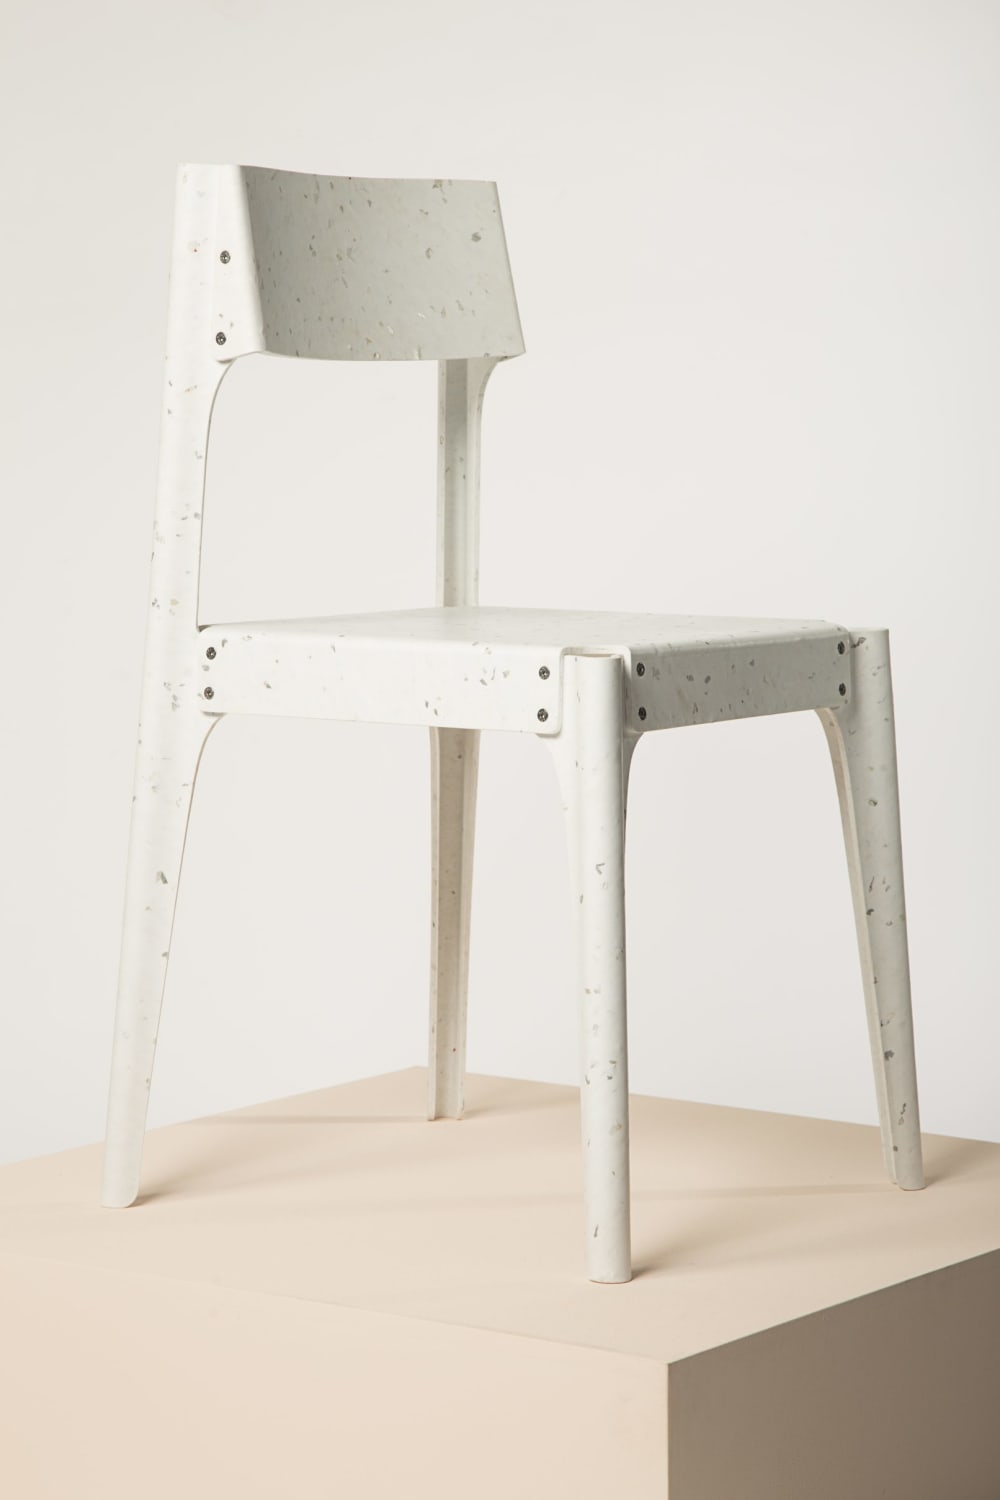 "Recycled plastic chair winning the Guiltess Plastic Prize; one of the plastic recycling initiatives presented at Milan Design Week.<span class=""sr-only""> (opened in a new window/tab)</span>"